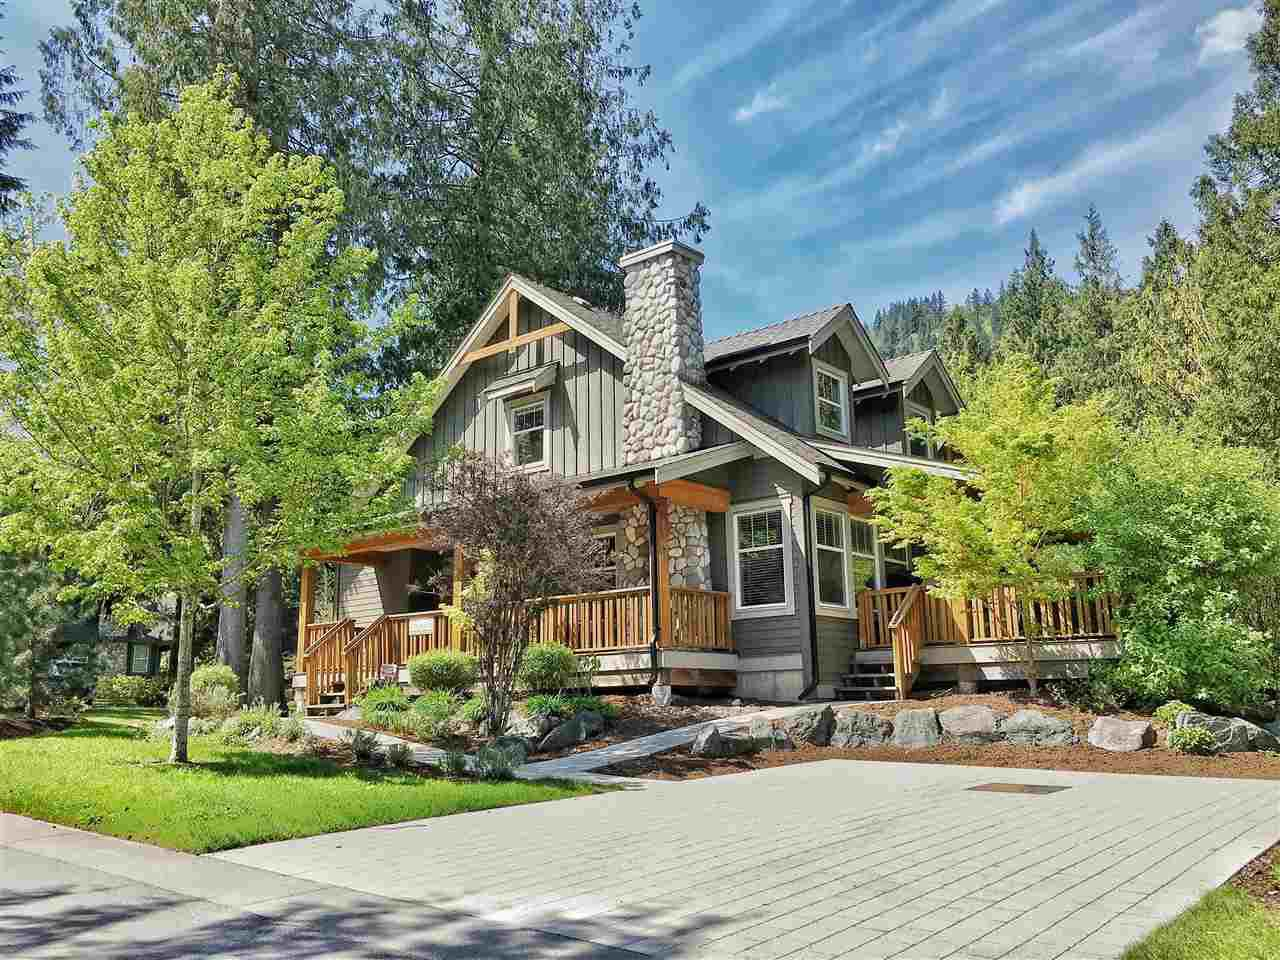 """Main Photo: 1880 HUCKLEBERRY Bend in Cultus Lake: Lindell Beach House for sale in """"THE COTTAGES AT CULTUS LAKE"""" : MLS®# R2356216"""